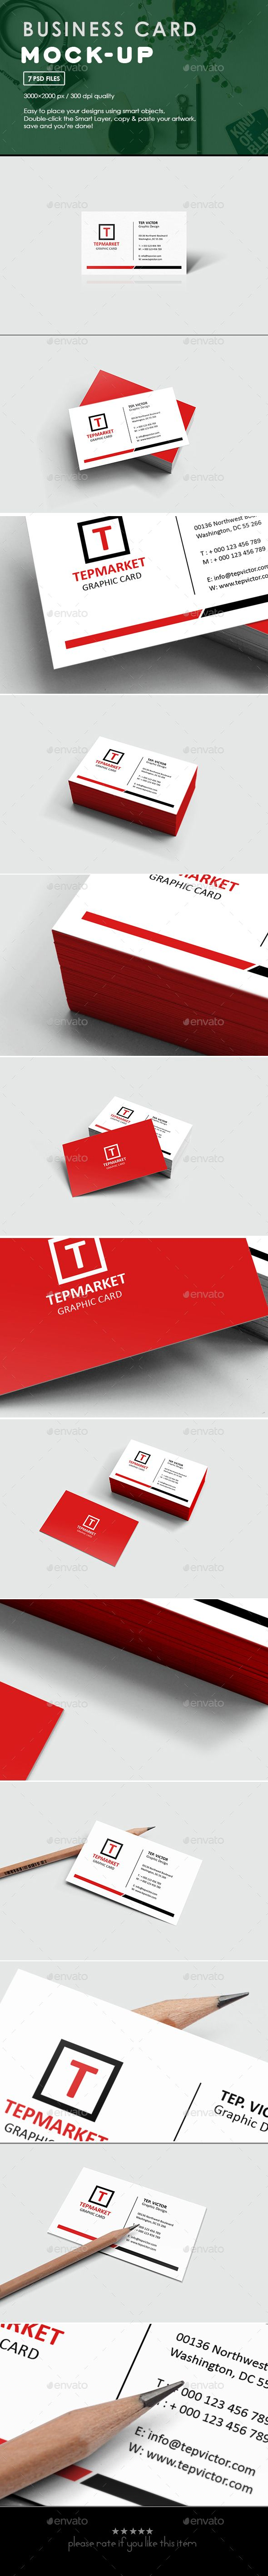 Enchanting business cards dc festooning business card ideas printing business cards in washington dc gallery card design and reheart Gallery